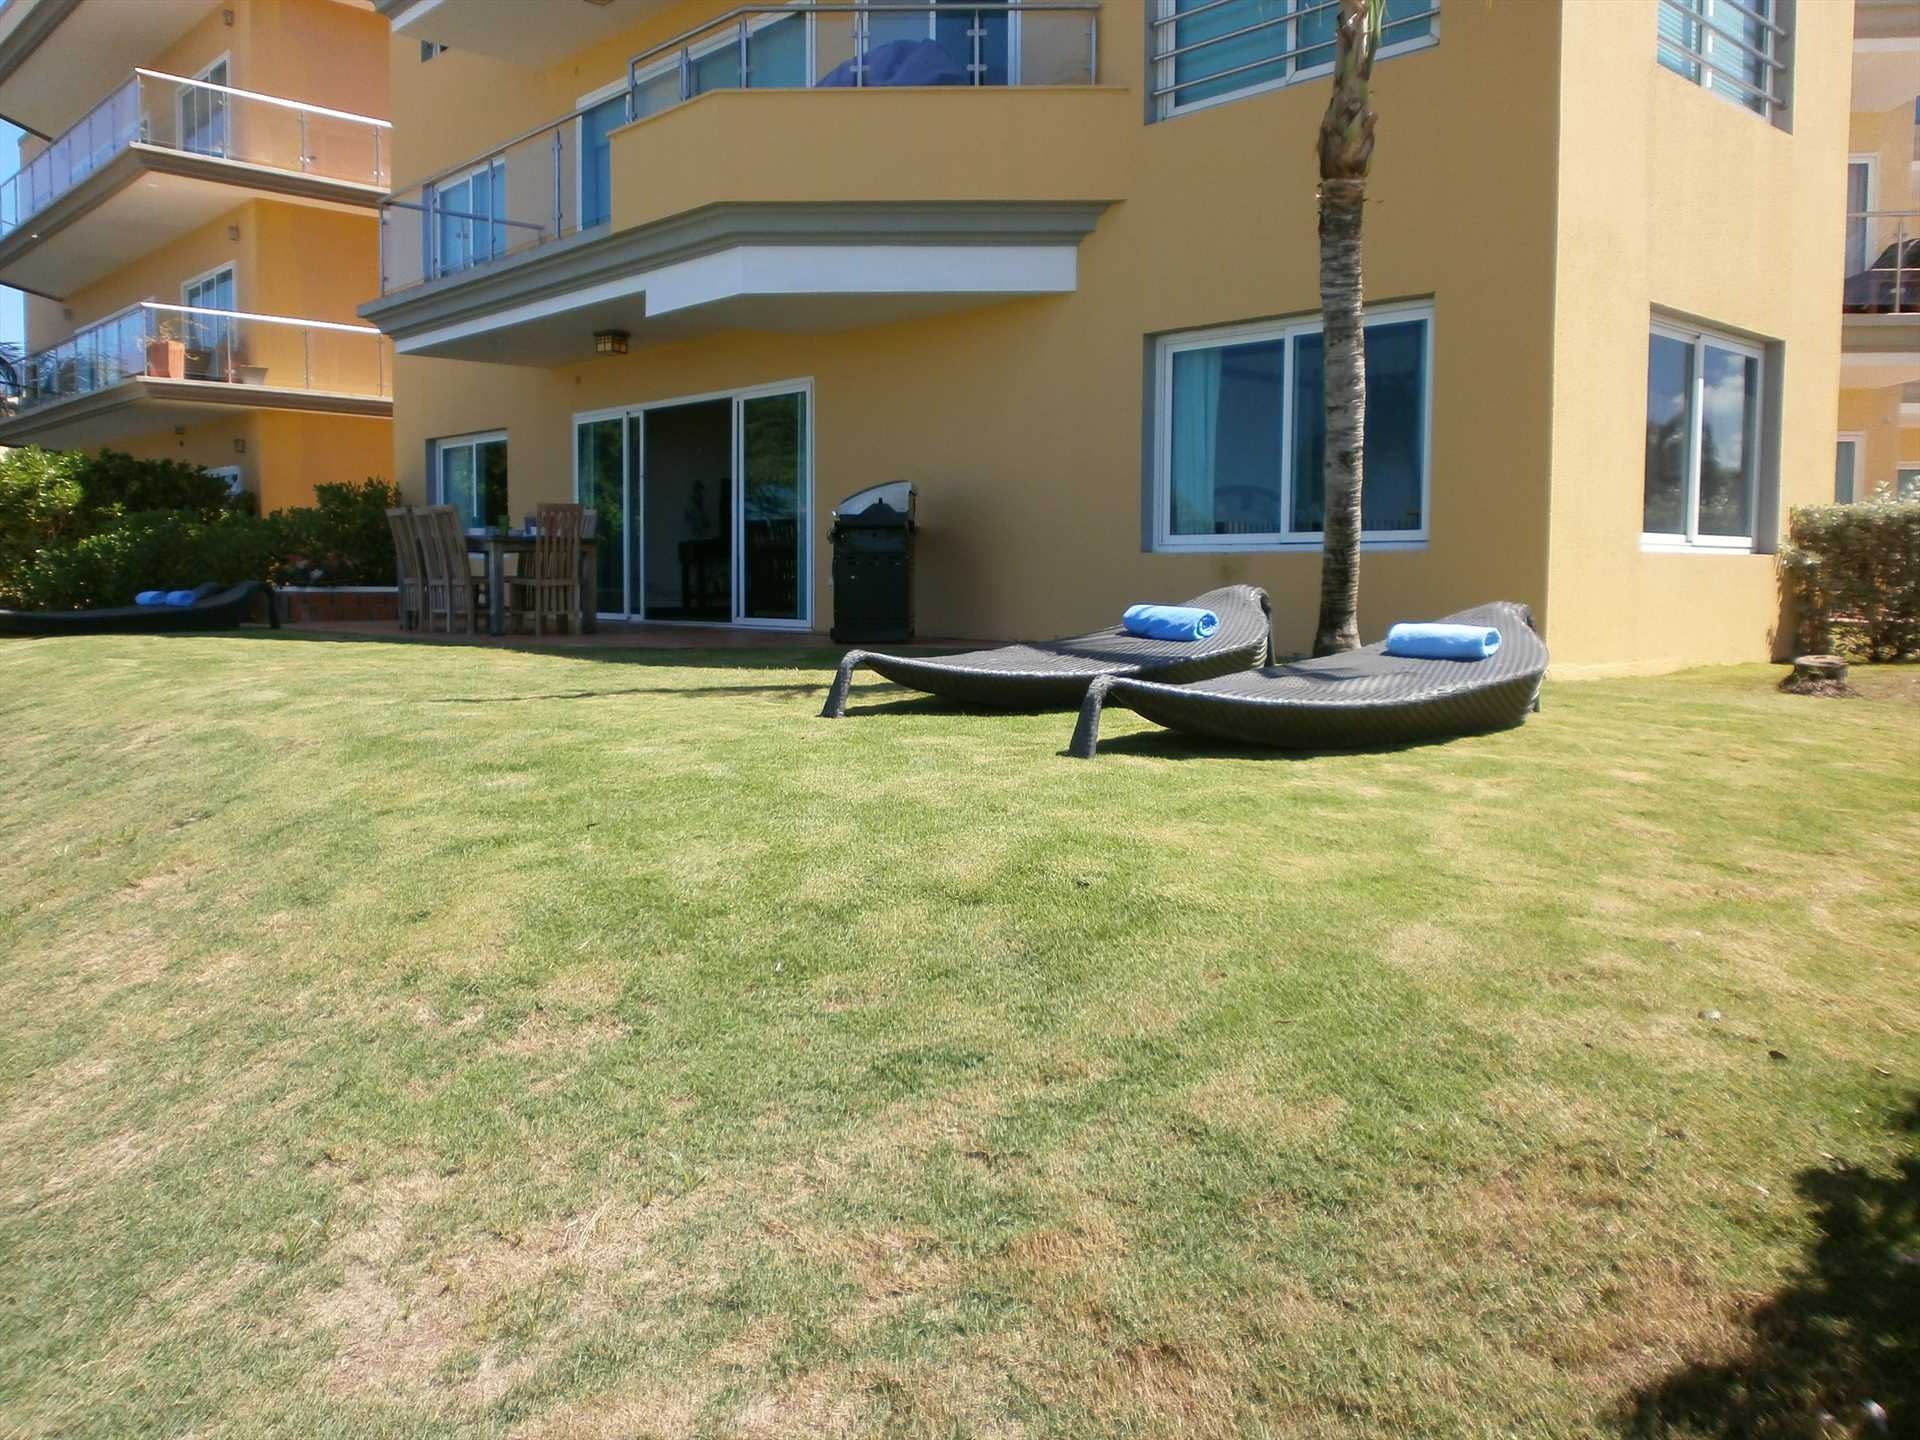 Private patio and garden with outdoor furniture and BBQ grill